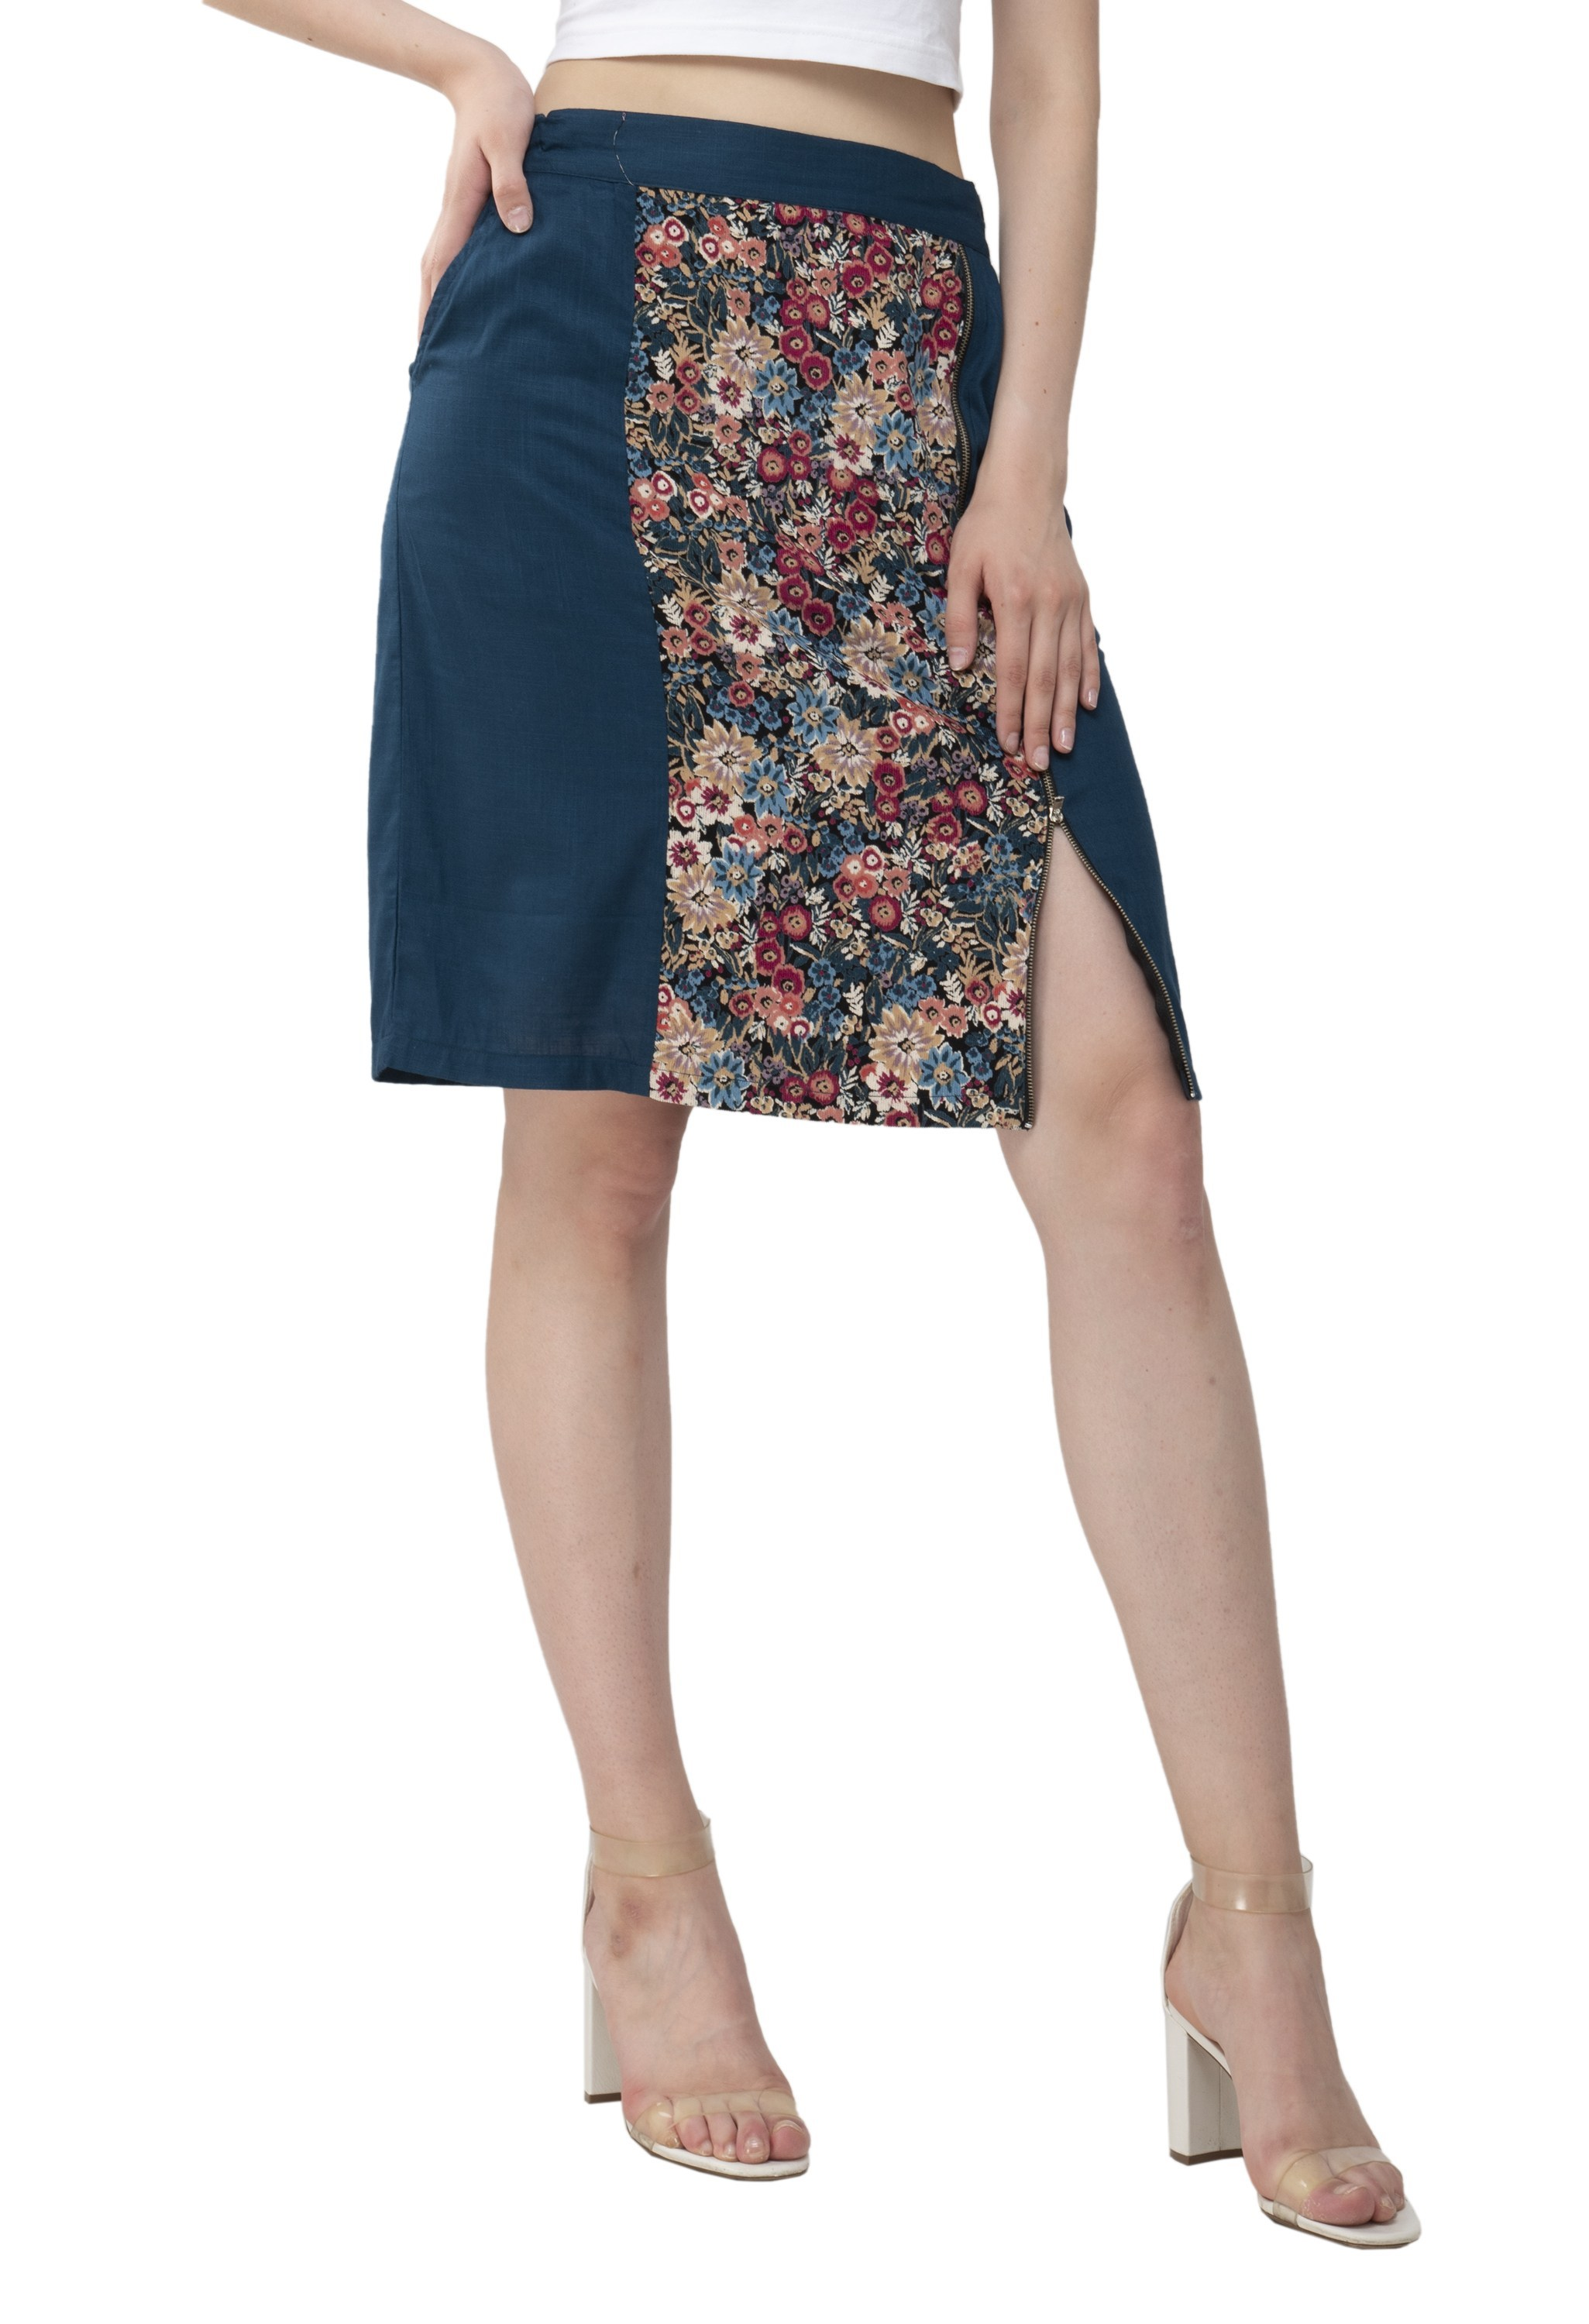 Teal and floral adjustable skirt from Grab Your Garb